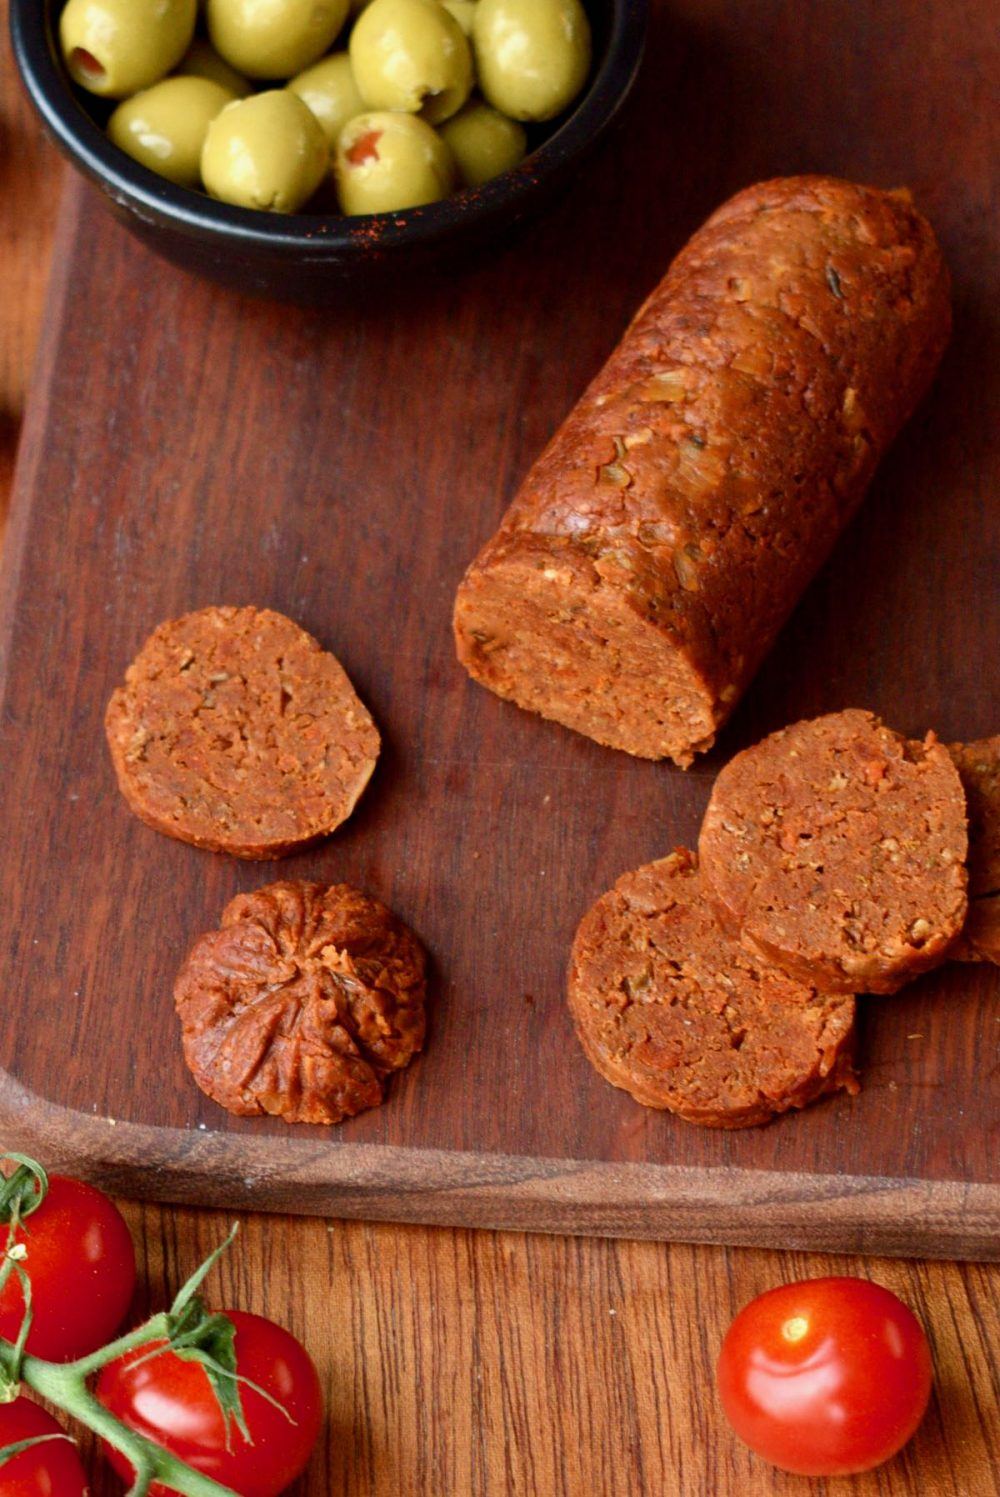 A dark wooden board with slices of vgean chorizo on. The chorizo is a rich orange colour.